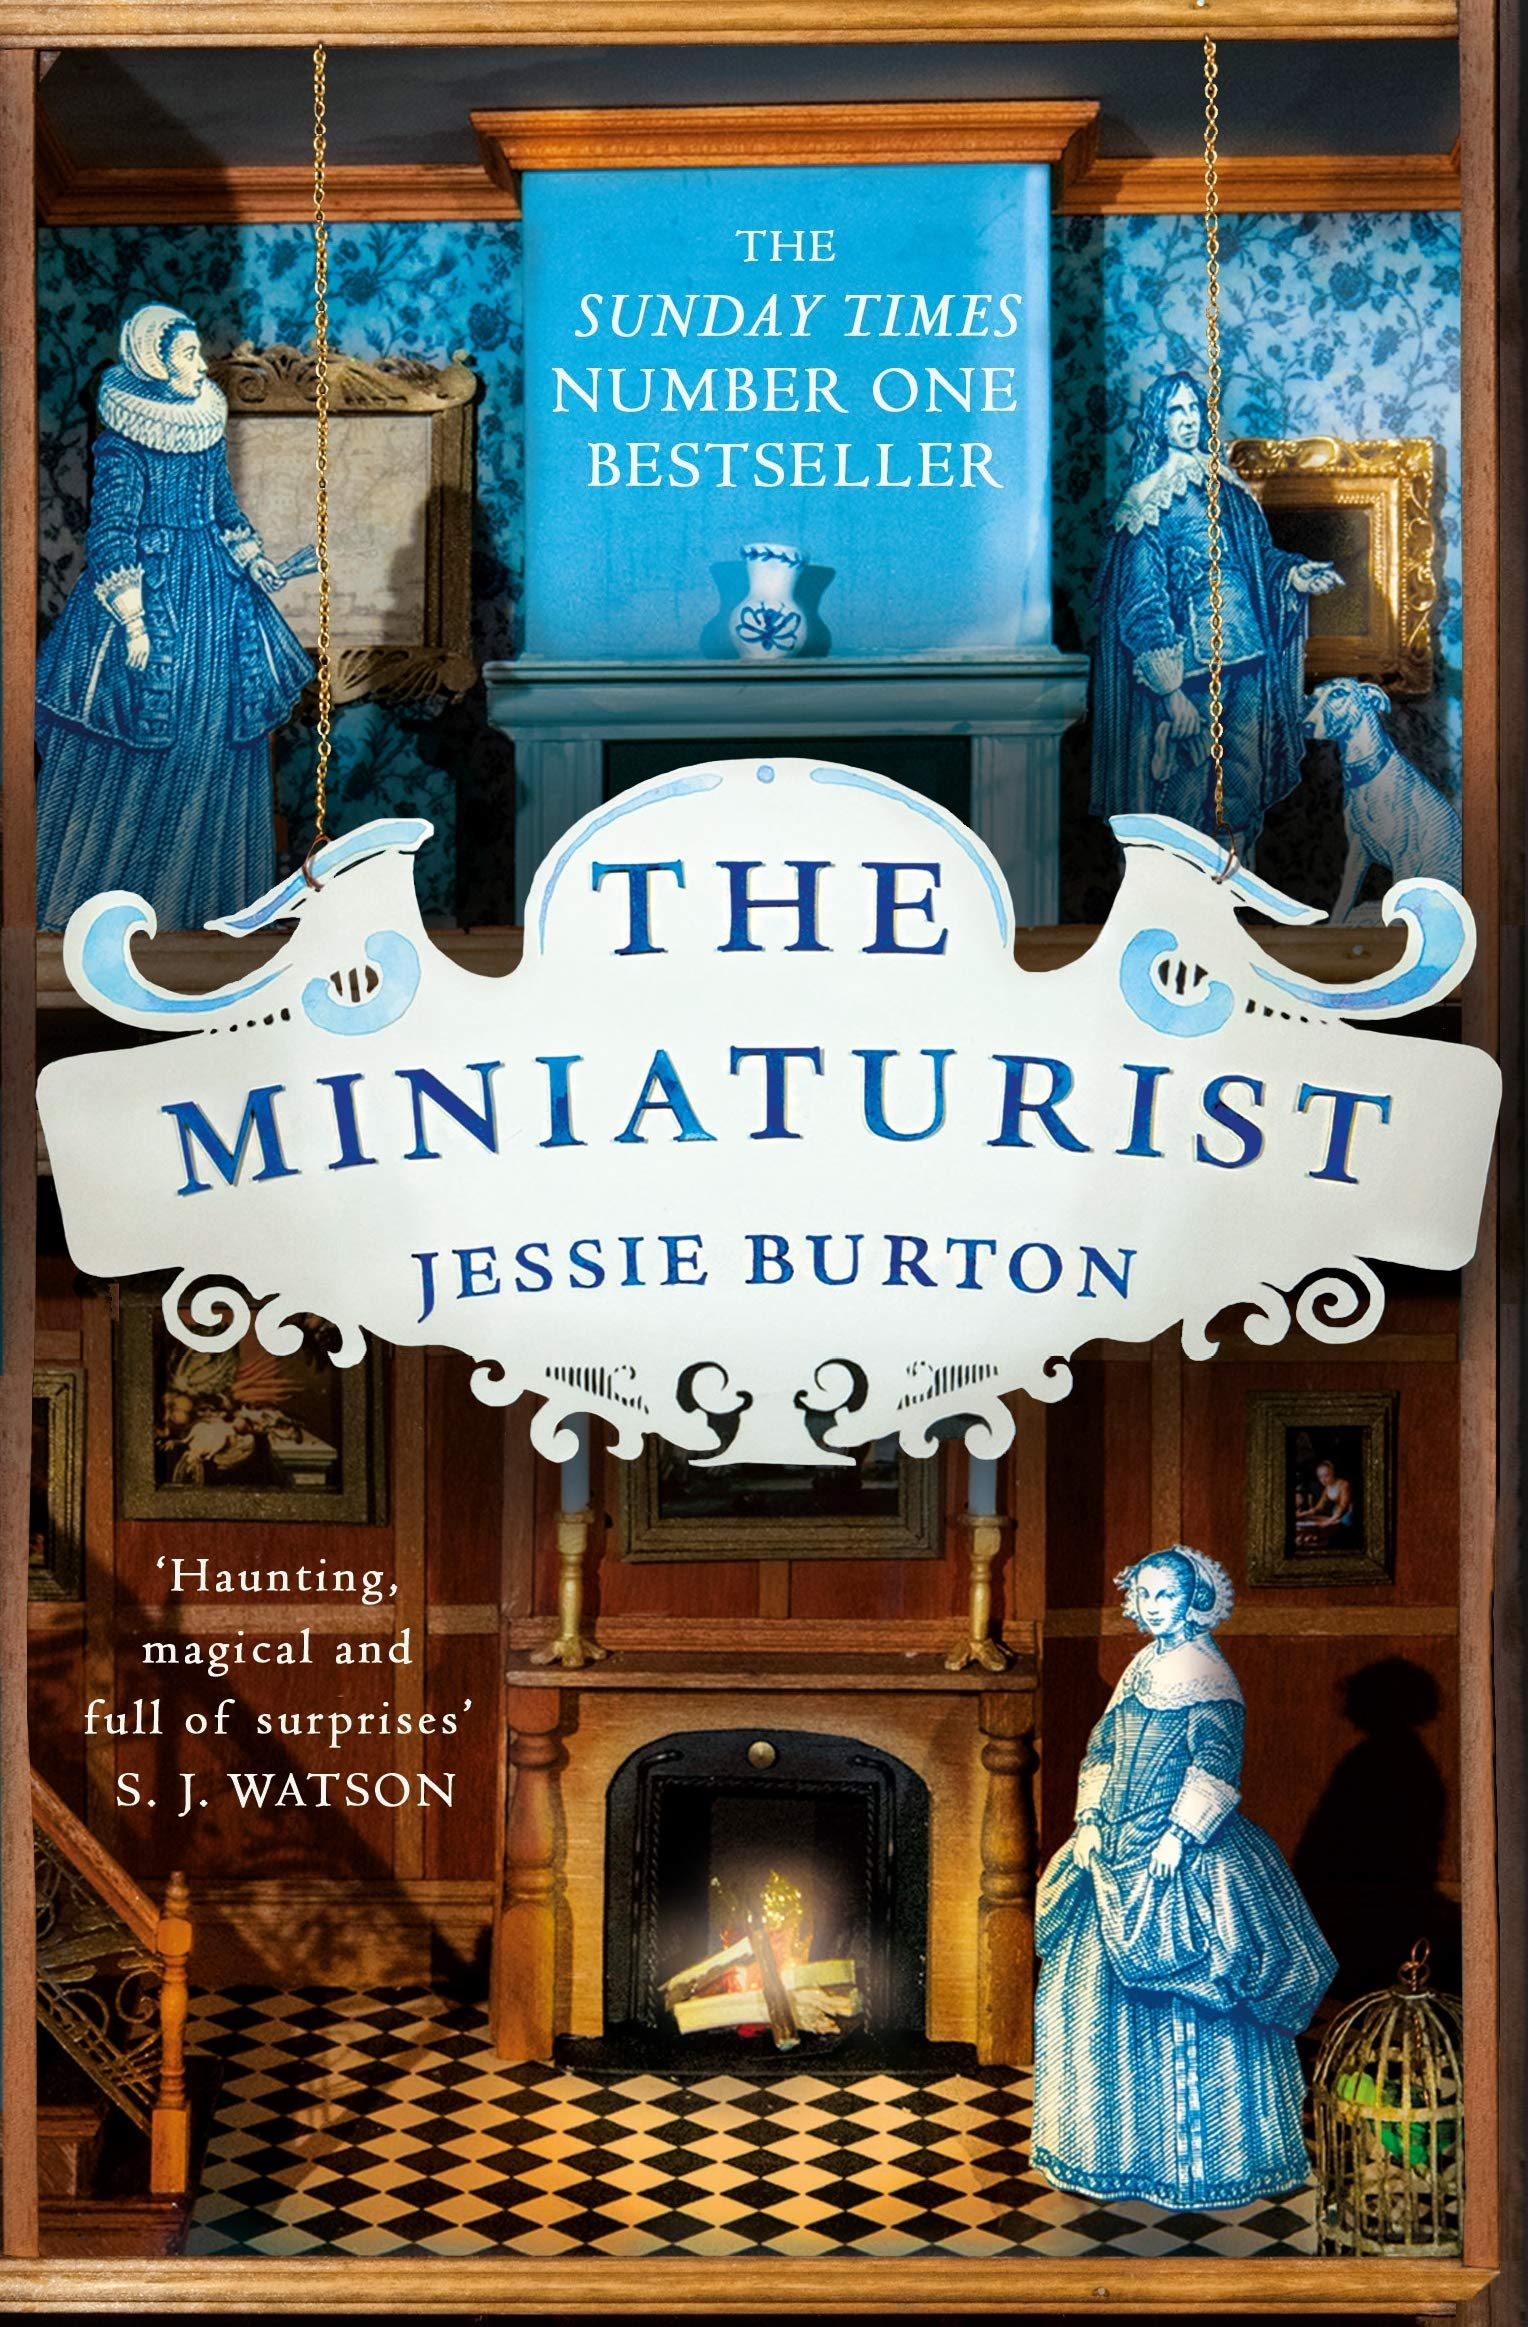 the book cover for the miniaturist by jessie burton